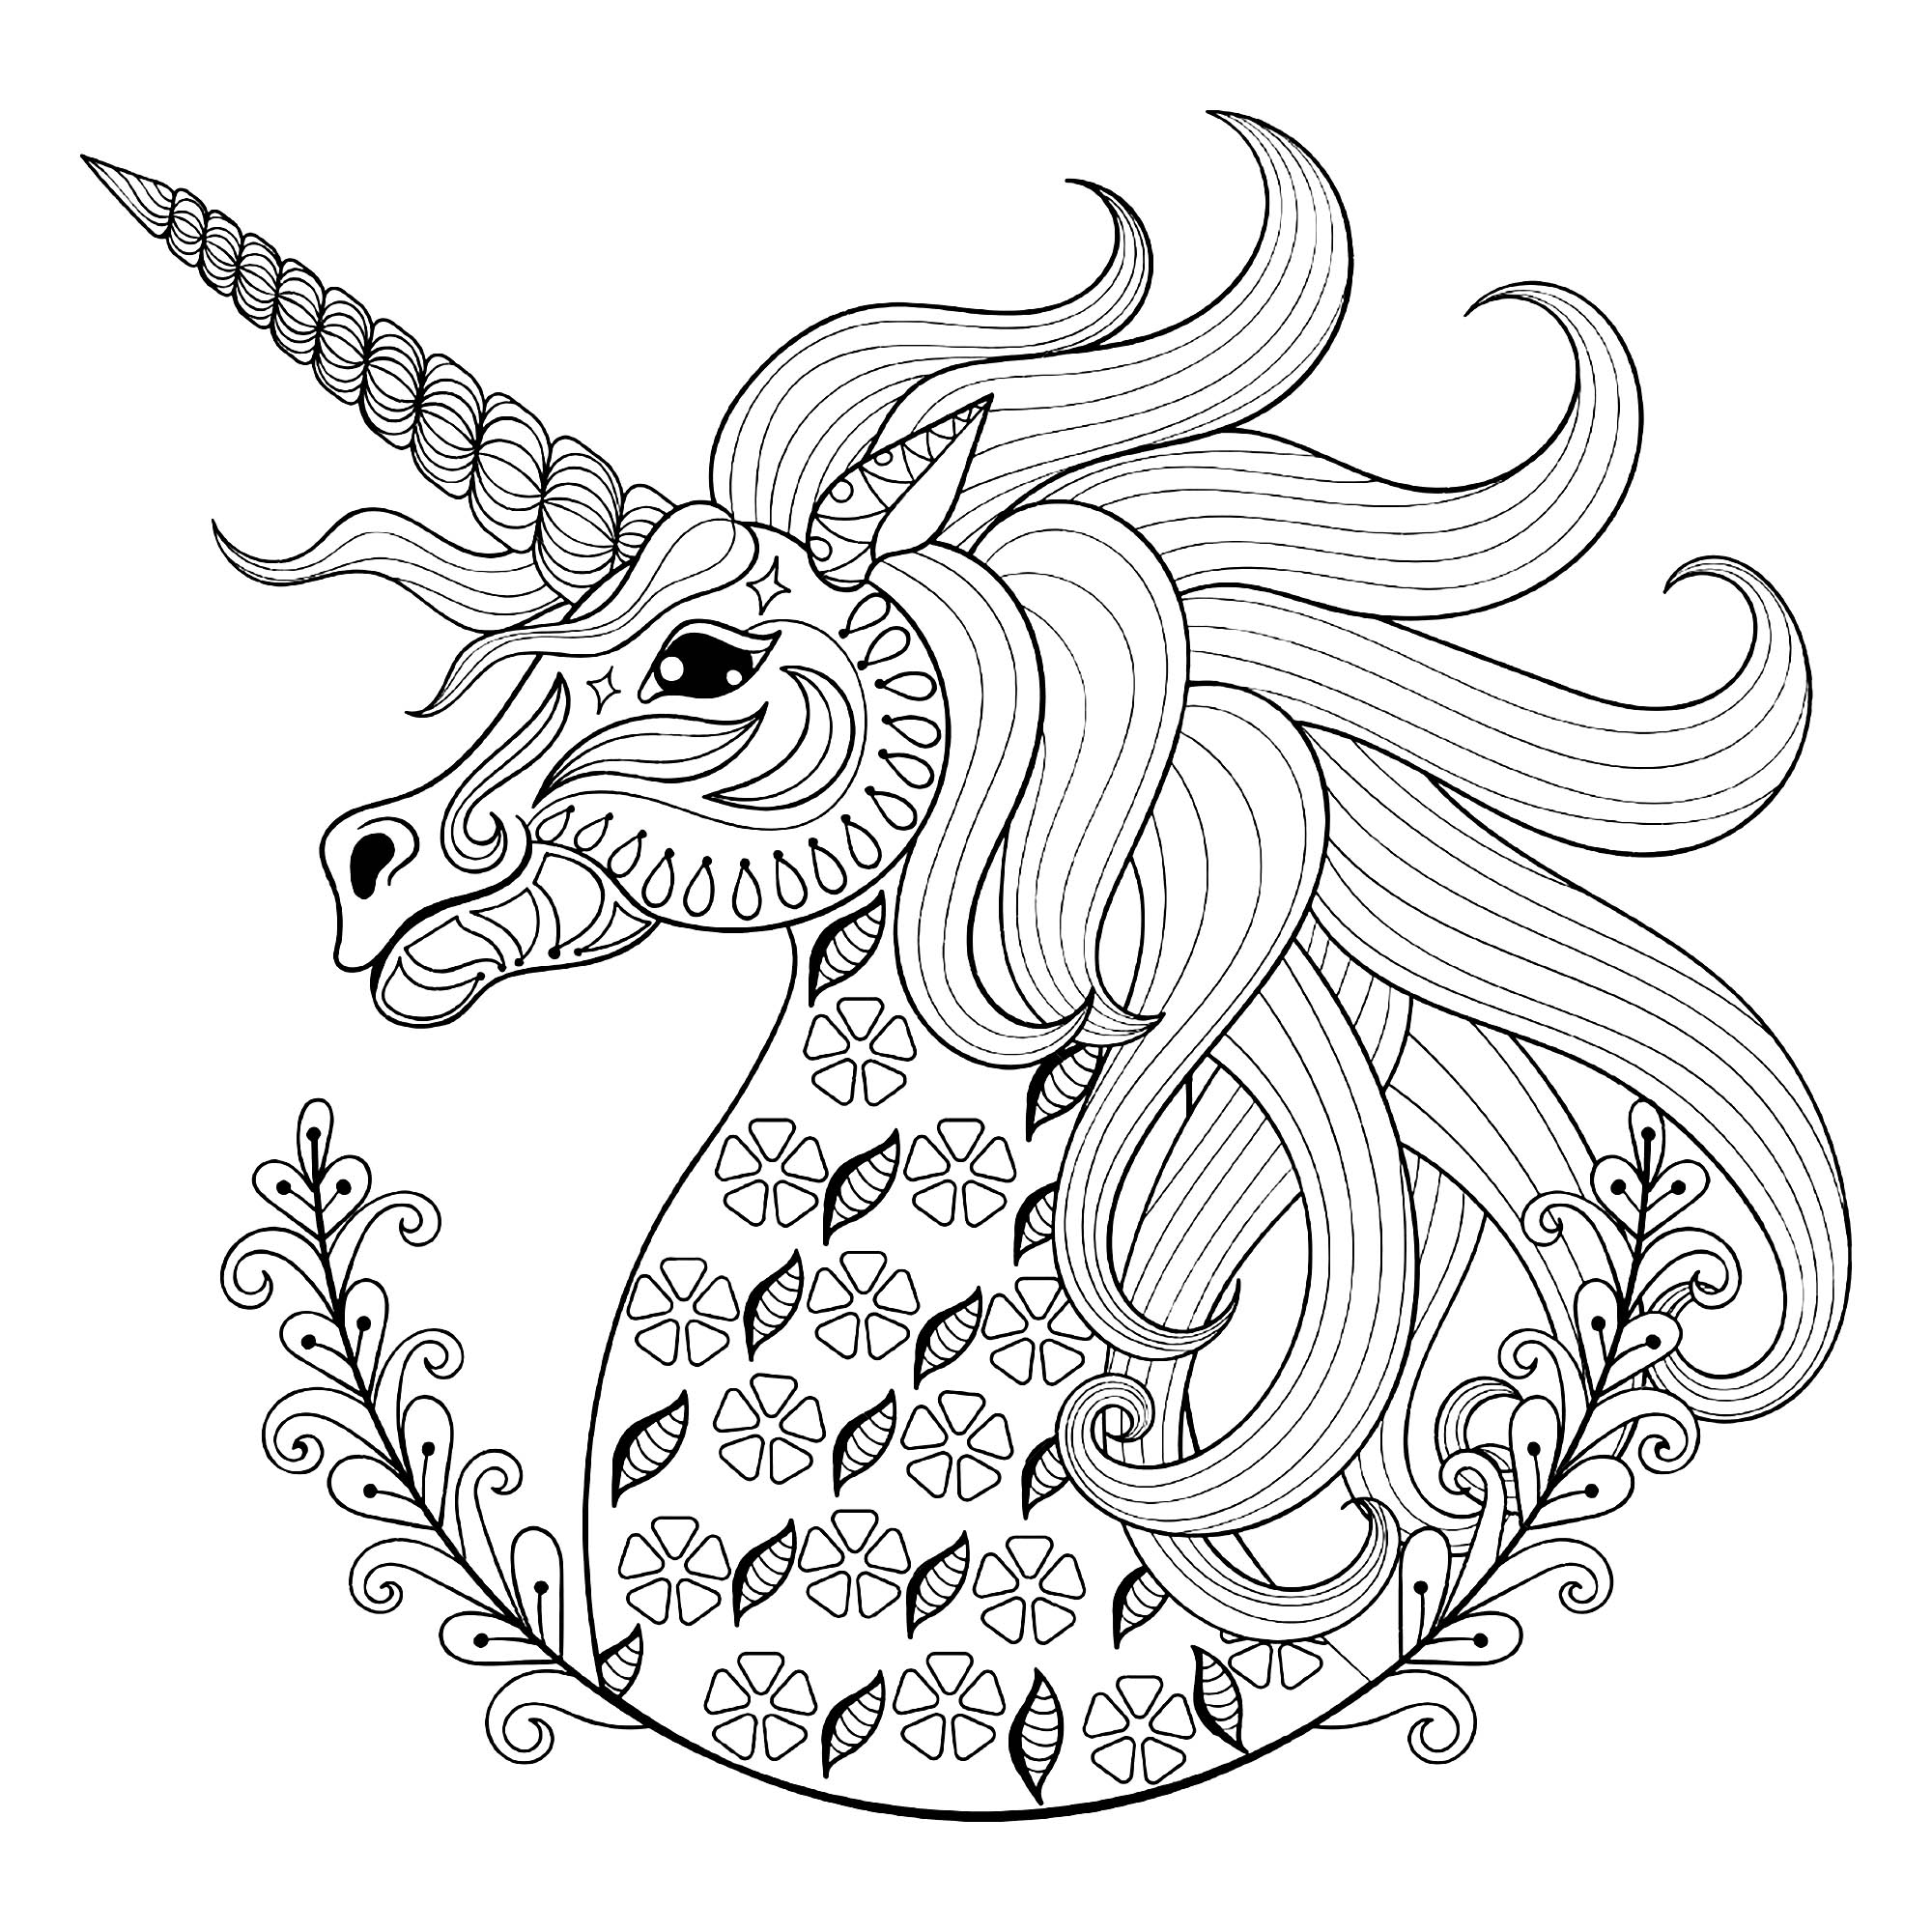 Unicorn head with patterns Unicorns